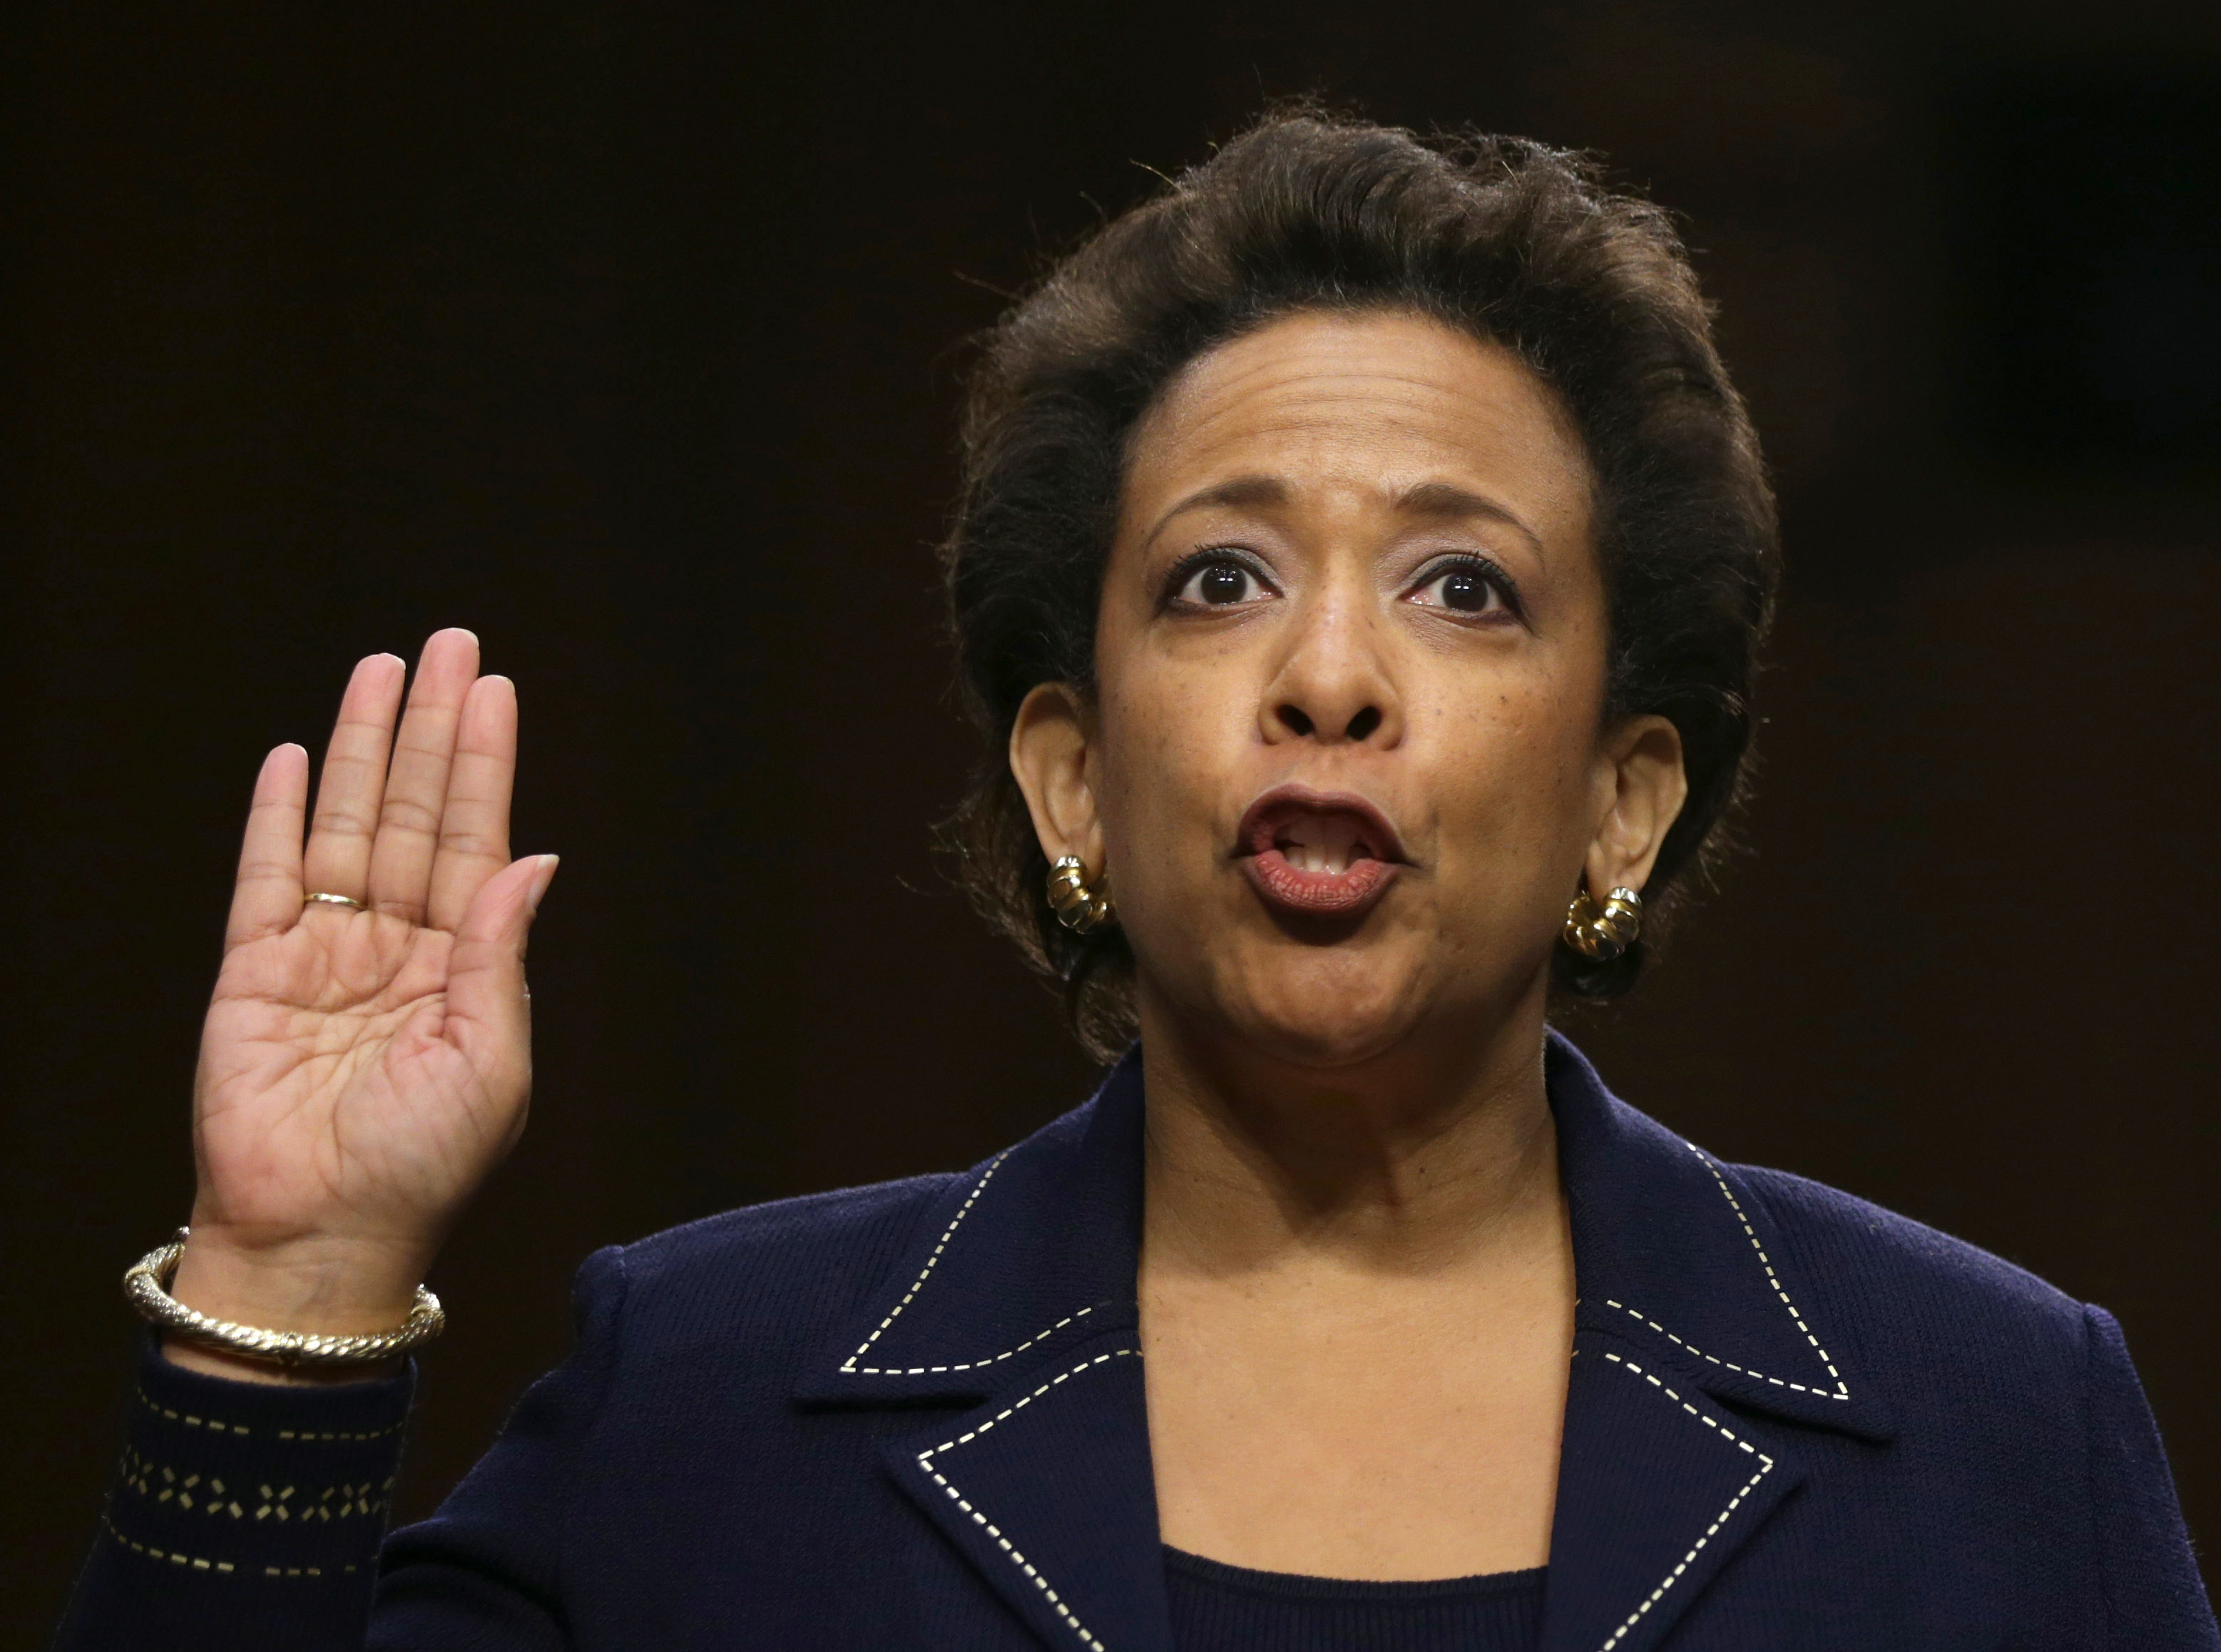 U.S. Attorney Loretta Lynch will be the next attorney general. (Photo by Alex Wong/Getty Images)